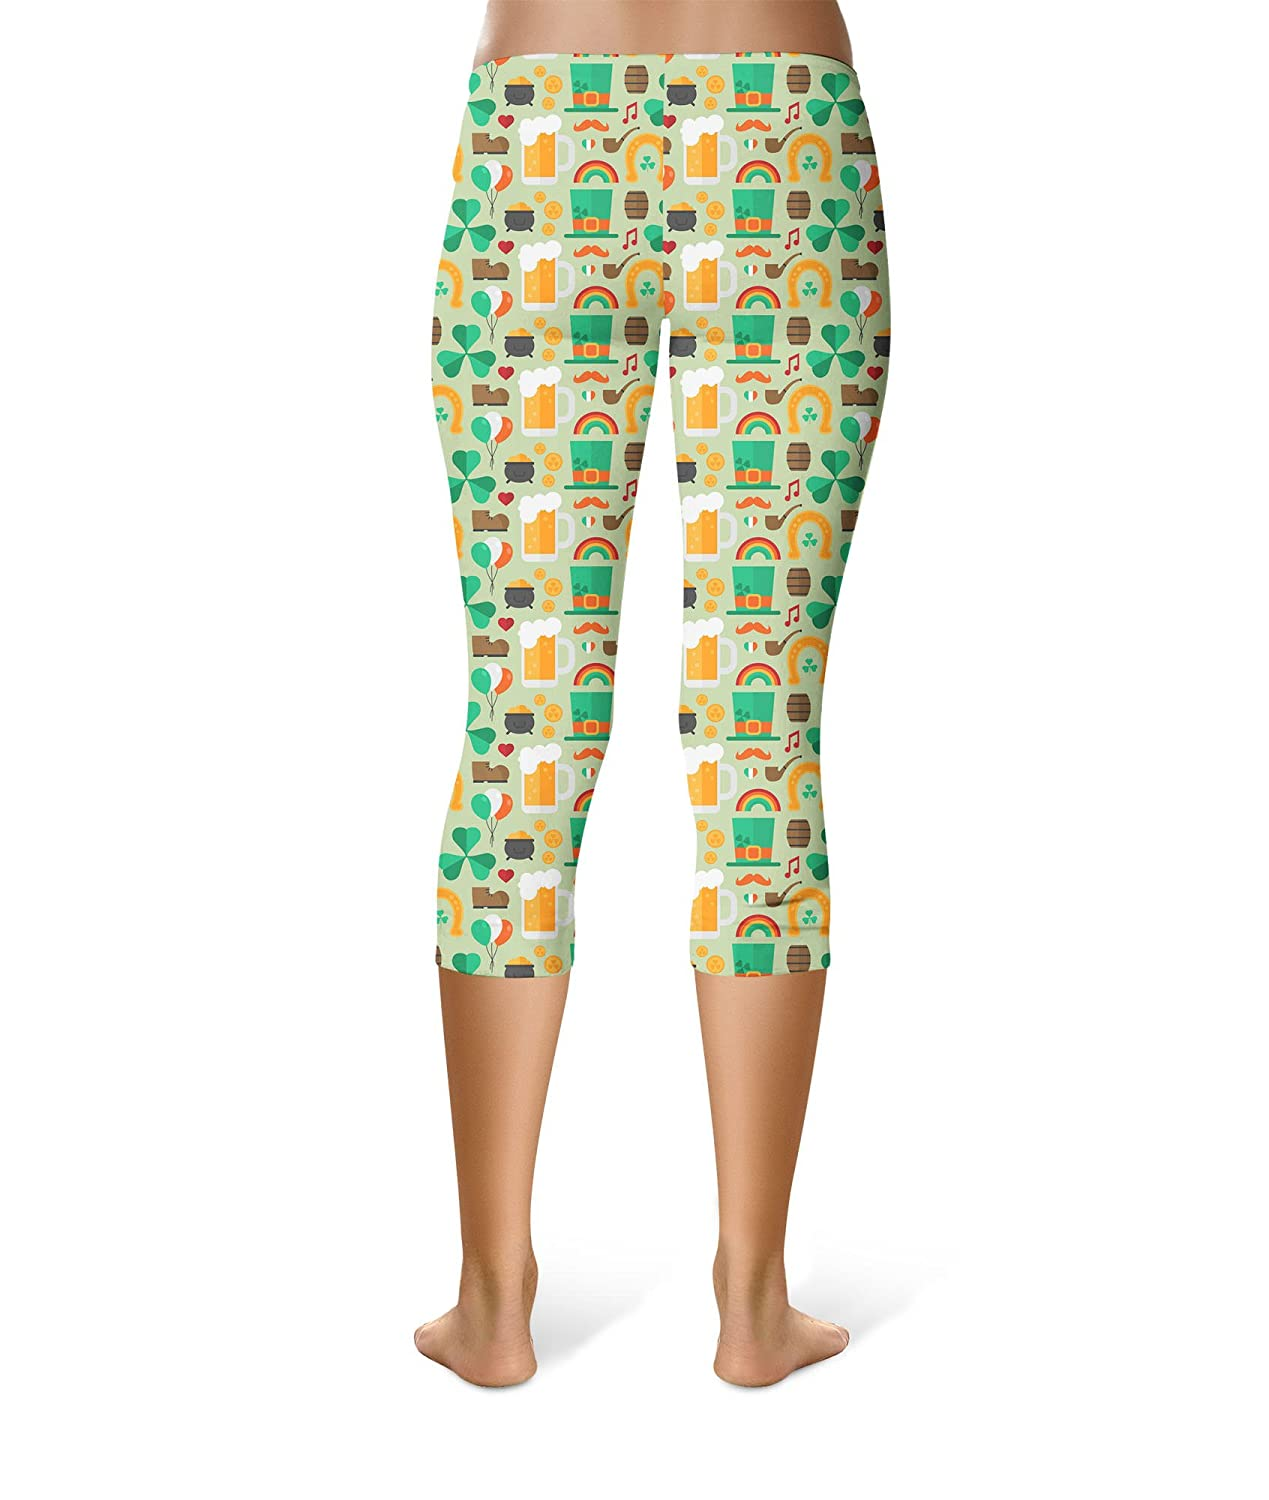 54d1776c1aceb6 Queen of Cases Lucky ST Patricks Day Capri Leggings XS-3XL Green at Amazon  Women's Clothing store: